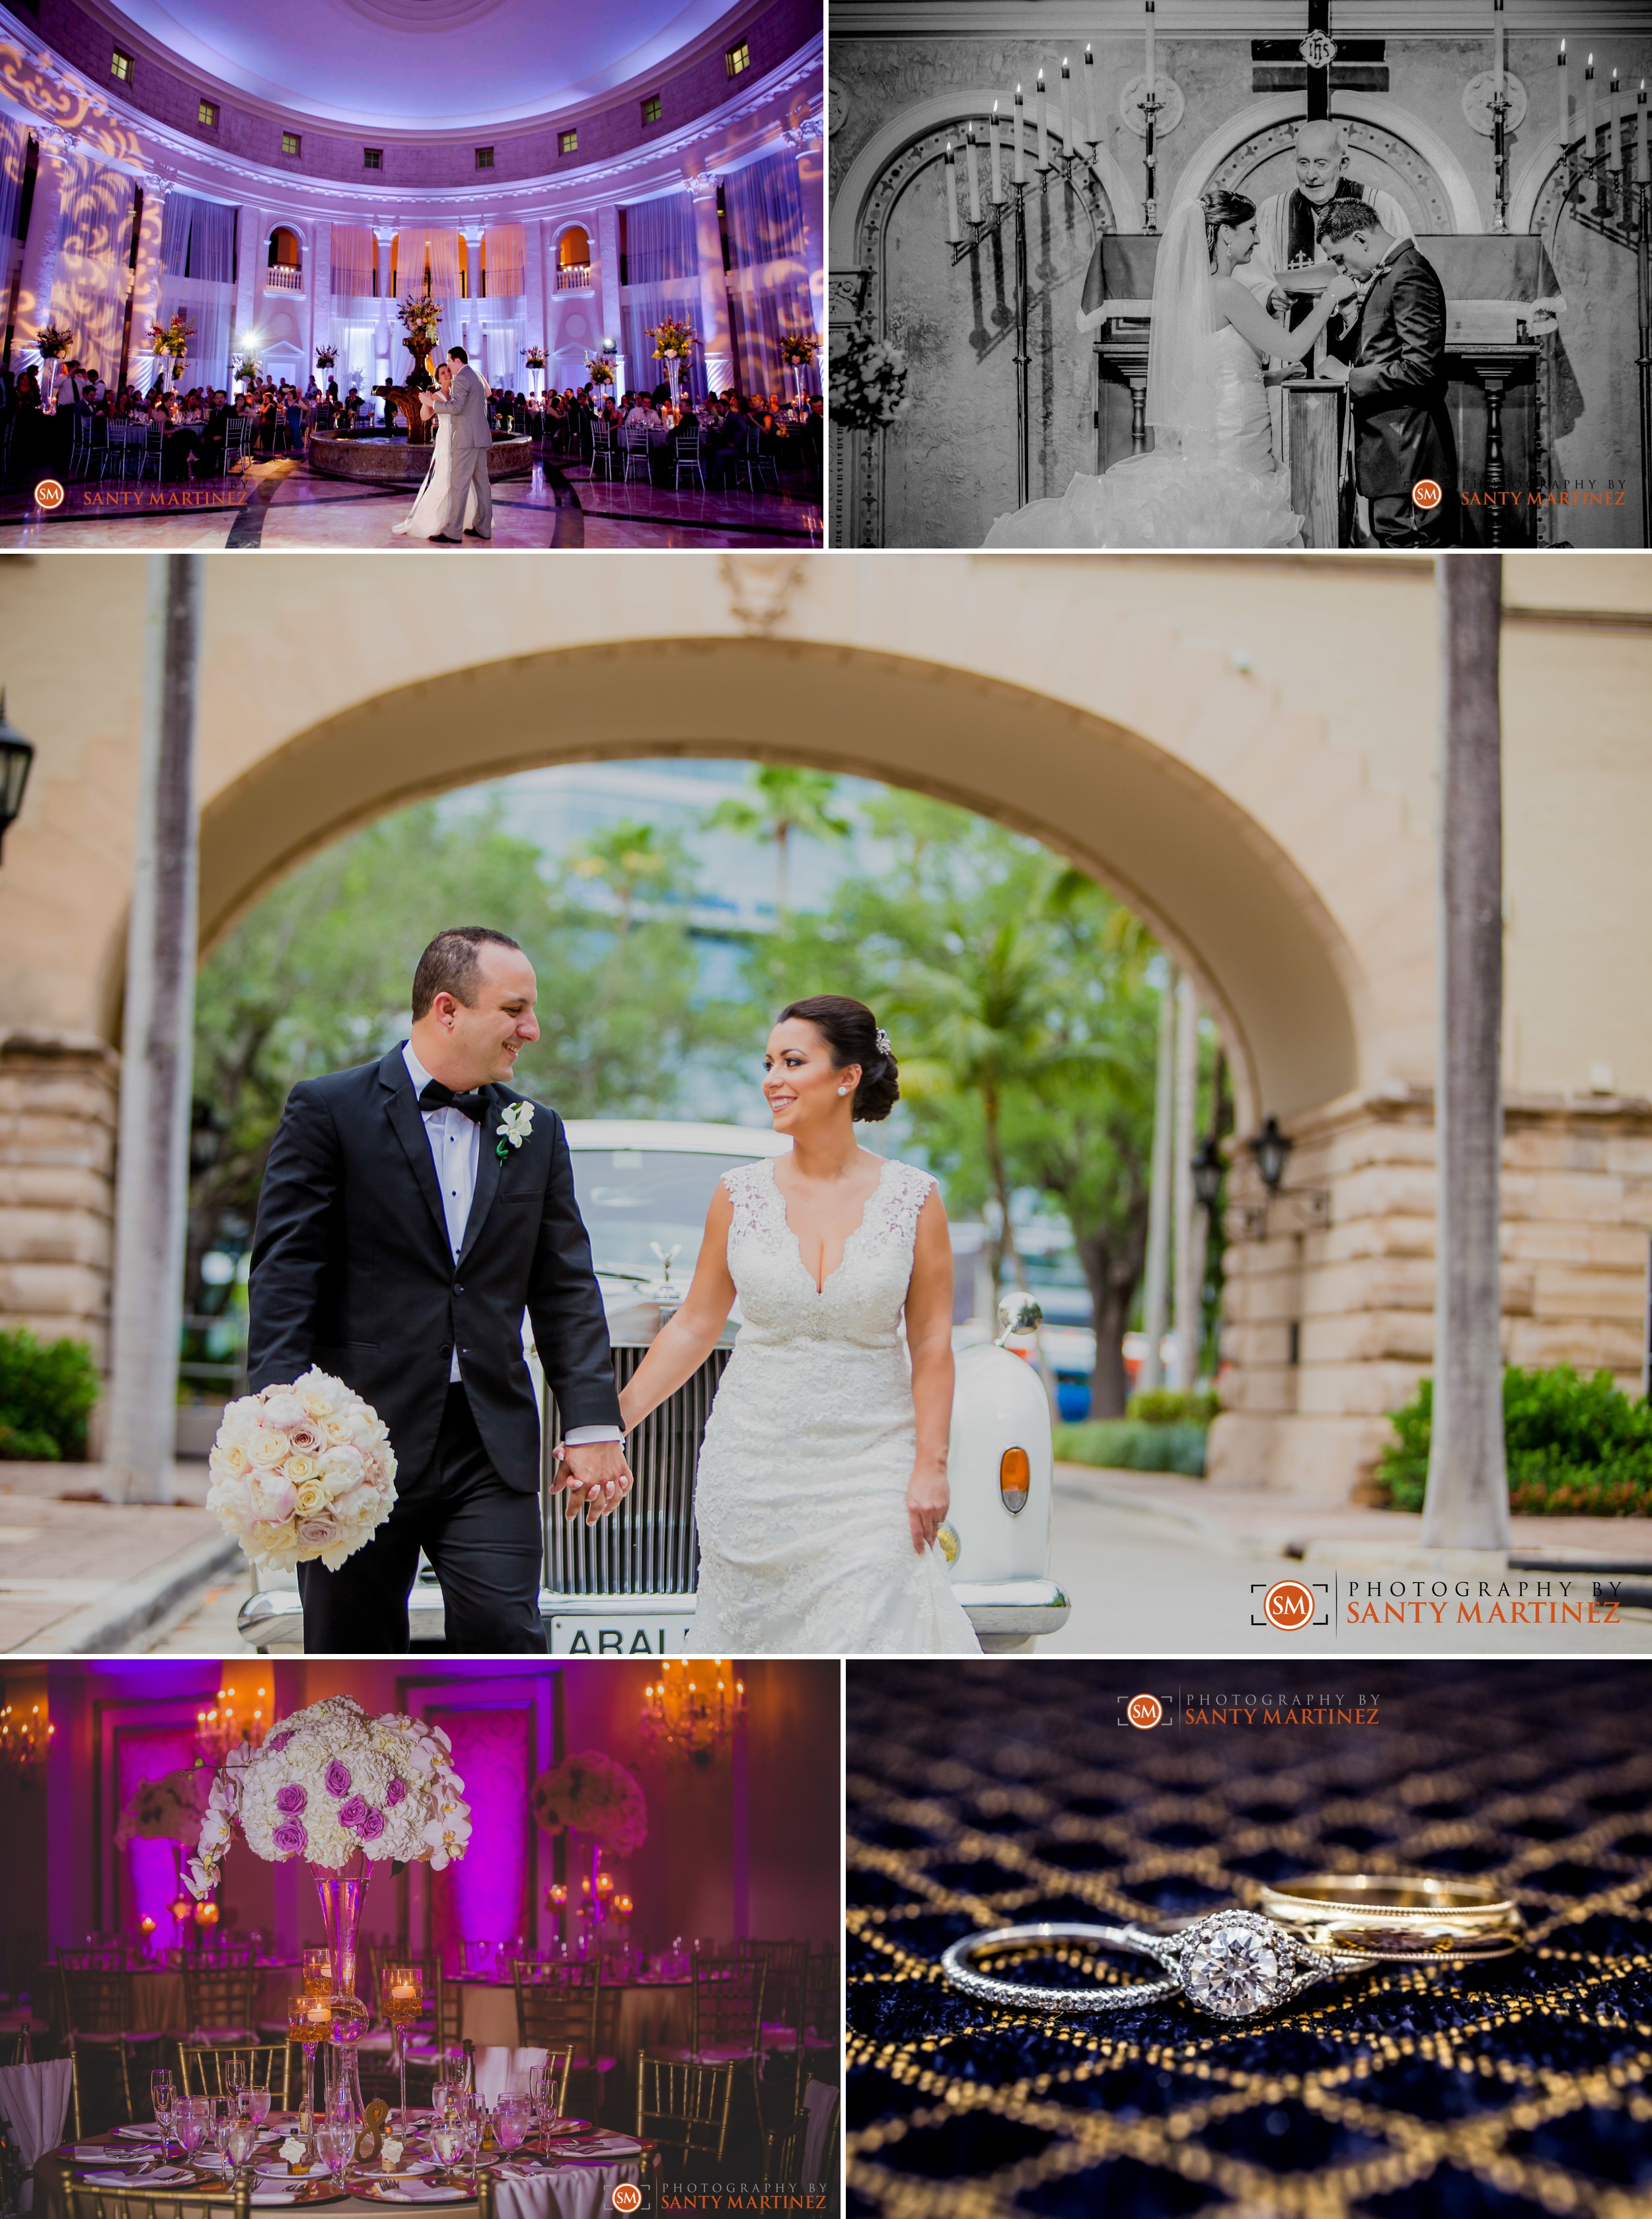 Santy Martinez - Photography - Miami Wedding Photographers 28.jpg